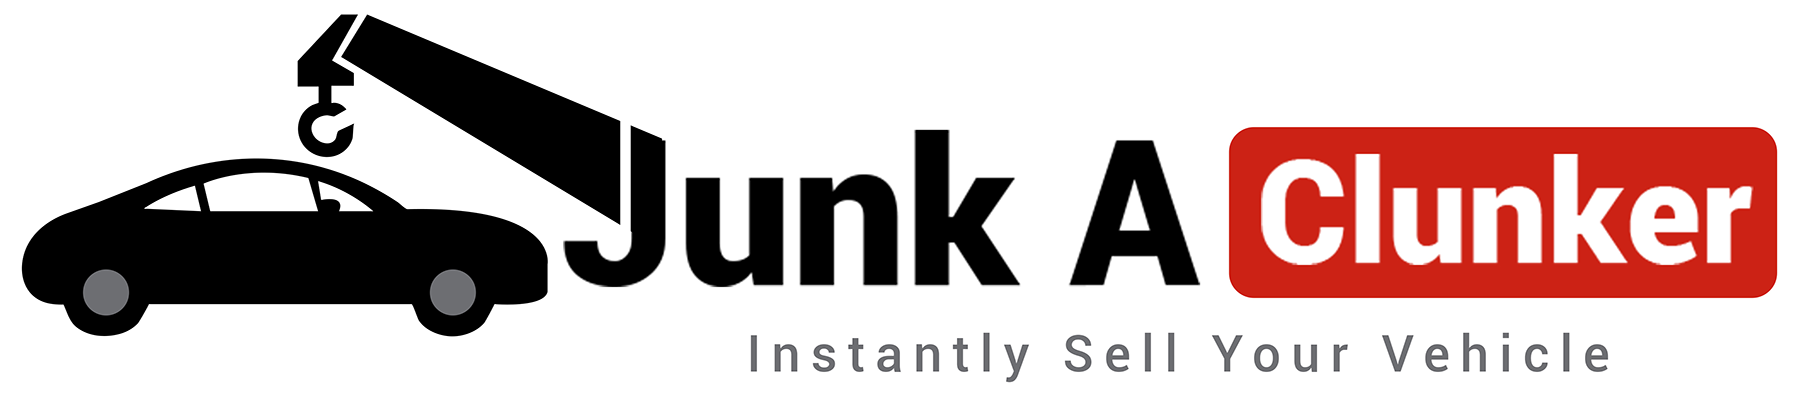 Cash for Junk and Used Cars Nationwide | JunkAClunker.com